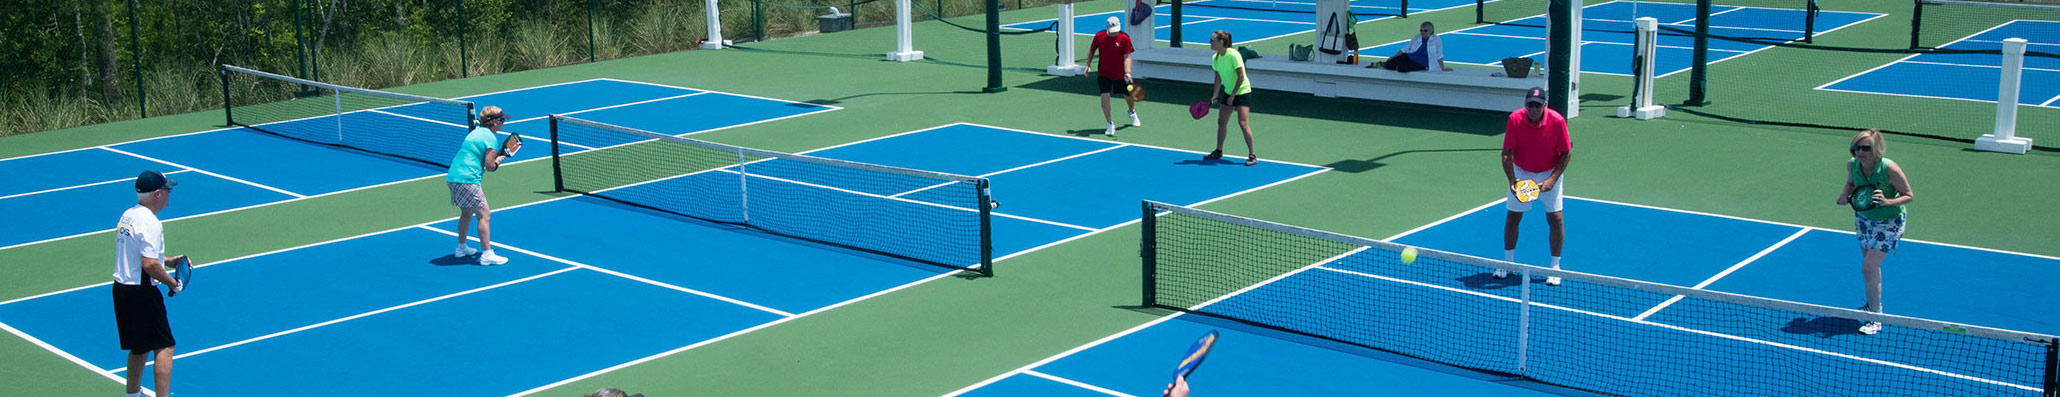 amenities_pickleball_longer